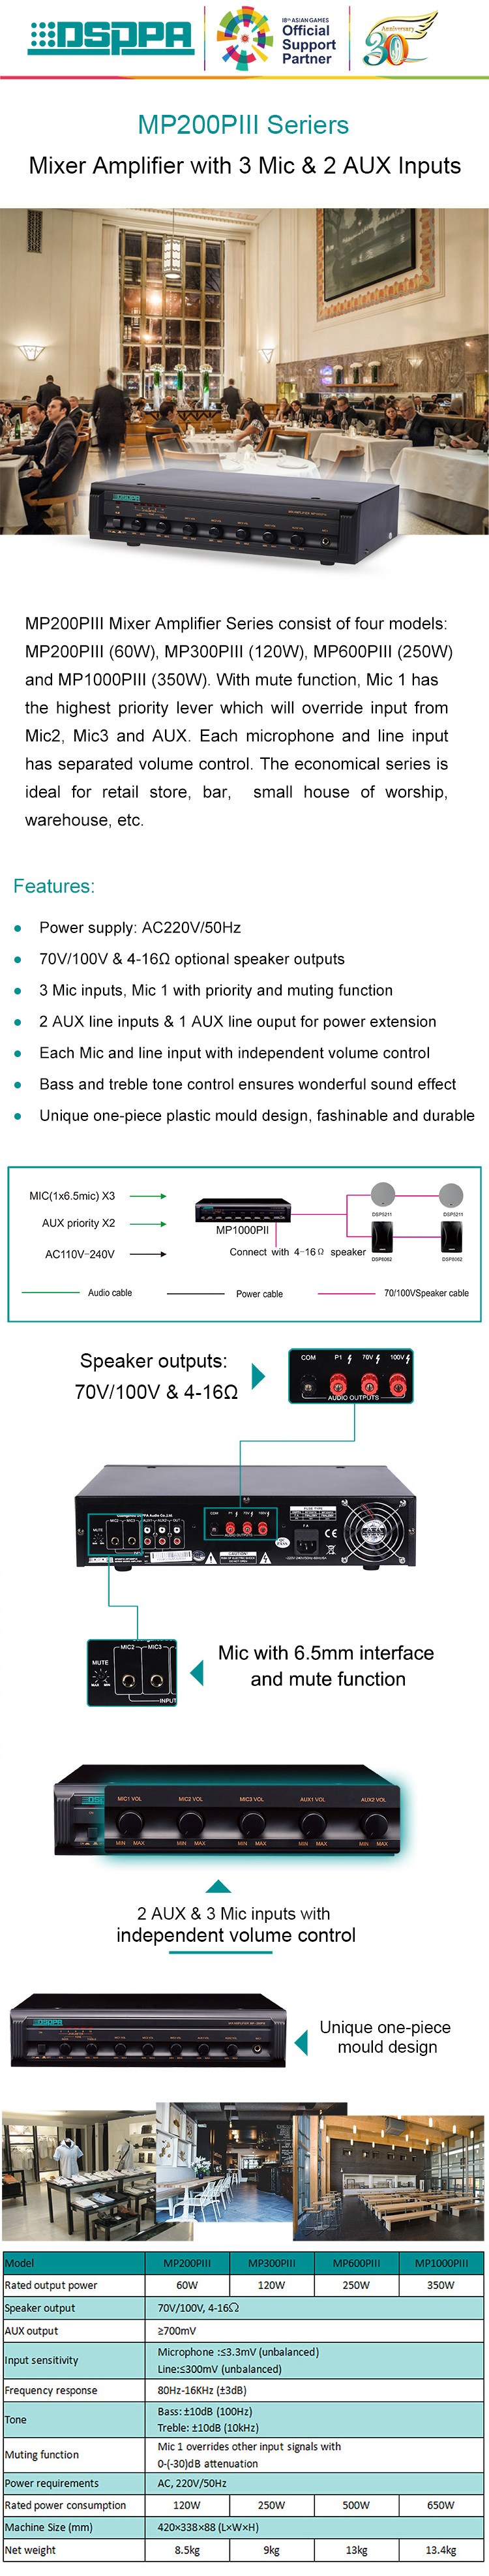 MP600PIII 250W 3 Mic & 2 AUX Mixing Amplifier